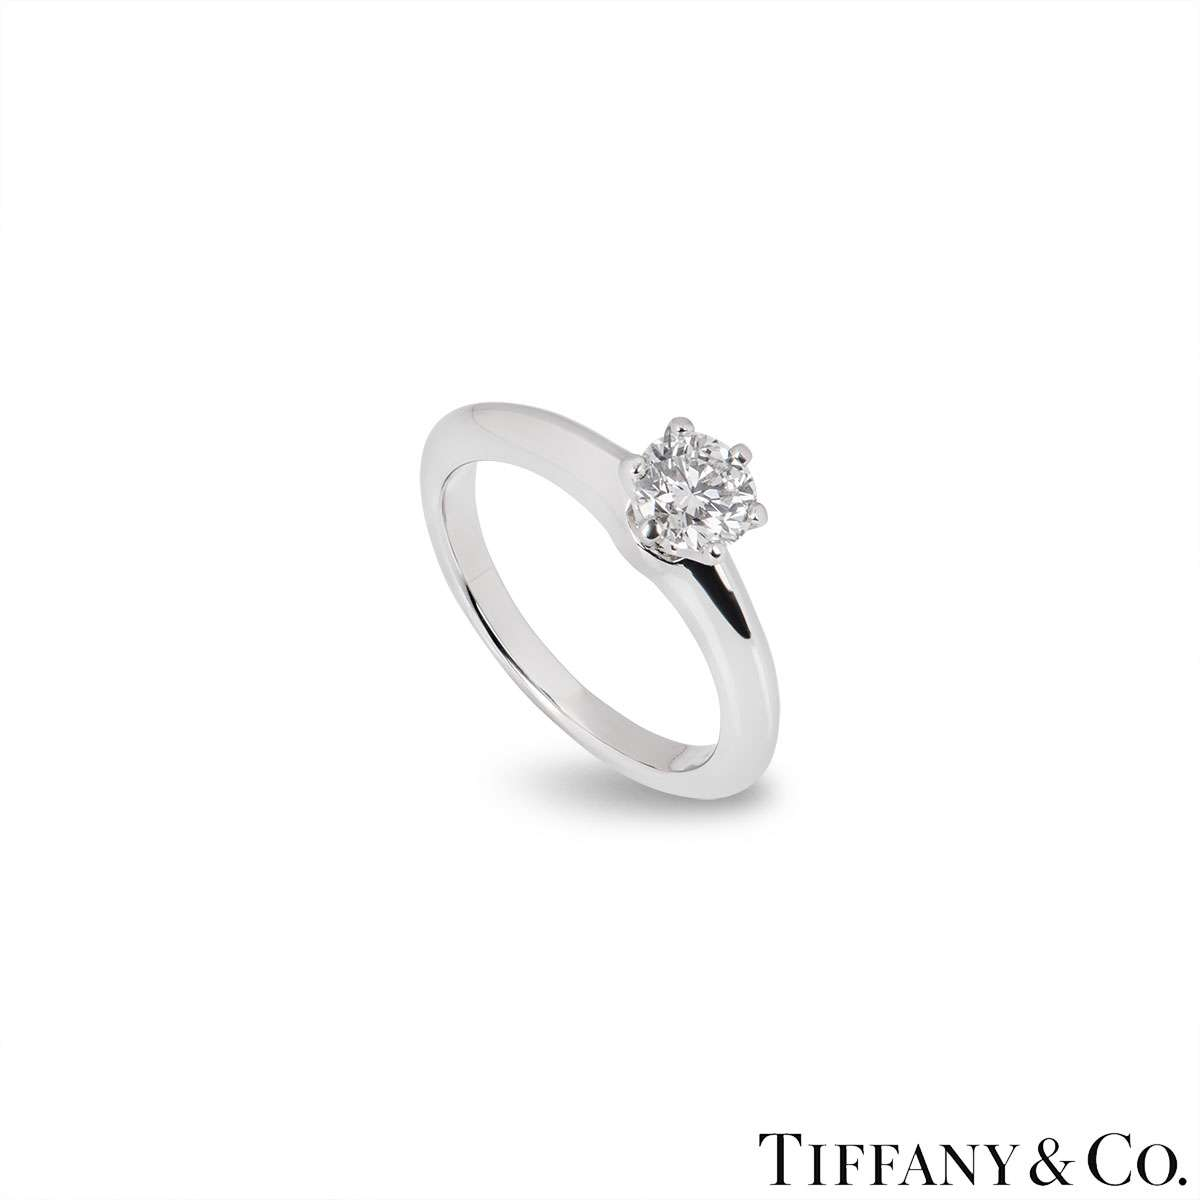 Tiffany & Co. Round Brilliant Cut Diamond Ring 0.60ct F/SI1